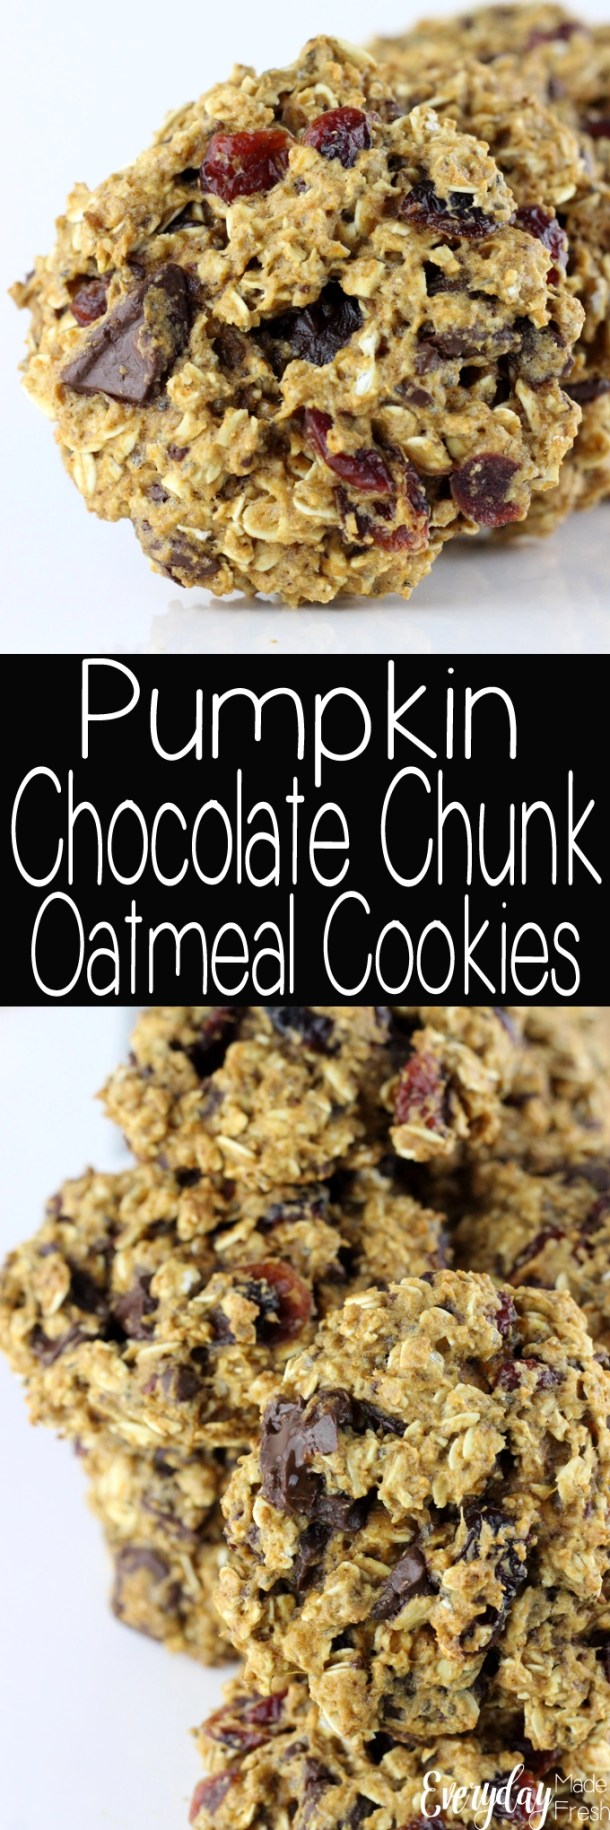 These Pumpkin Chocolate Chunk Oatmeal Cookies are thick, chewy, and they make a great breakfast cookie. Yes, cookies for breakfast! | EverydayMadeFresh.com